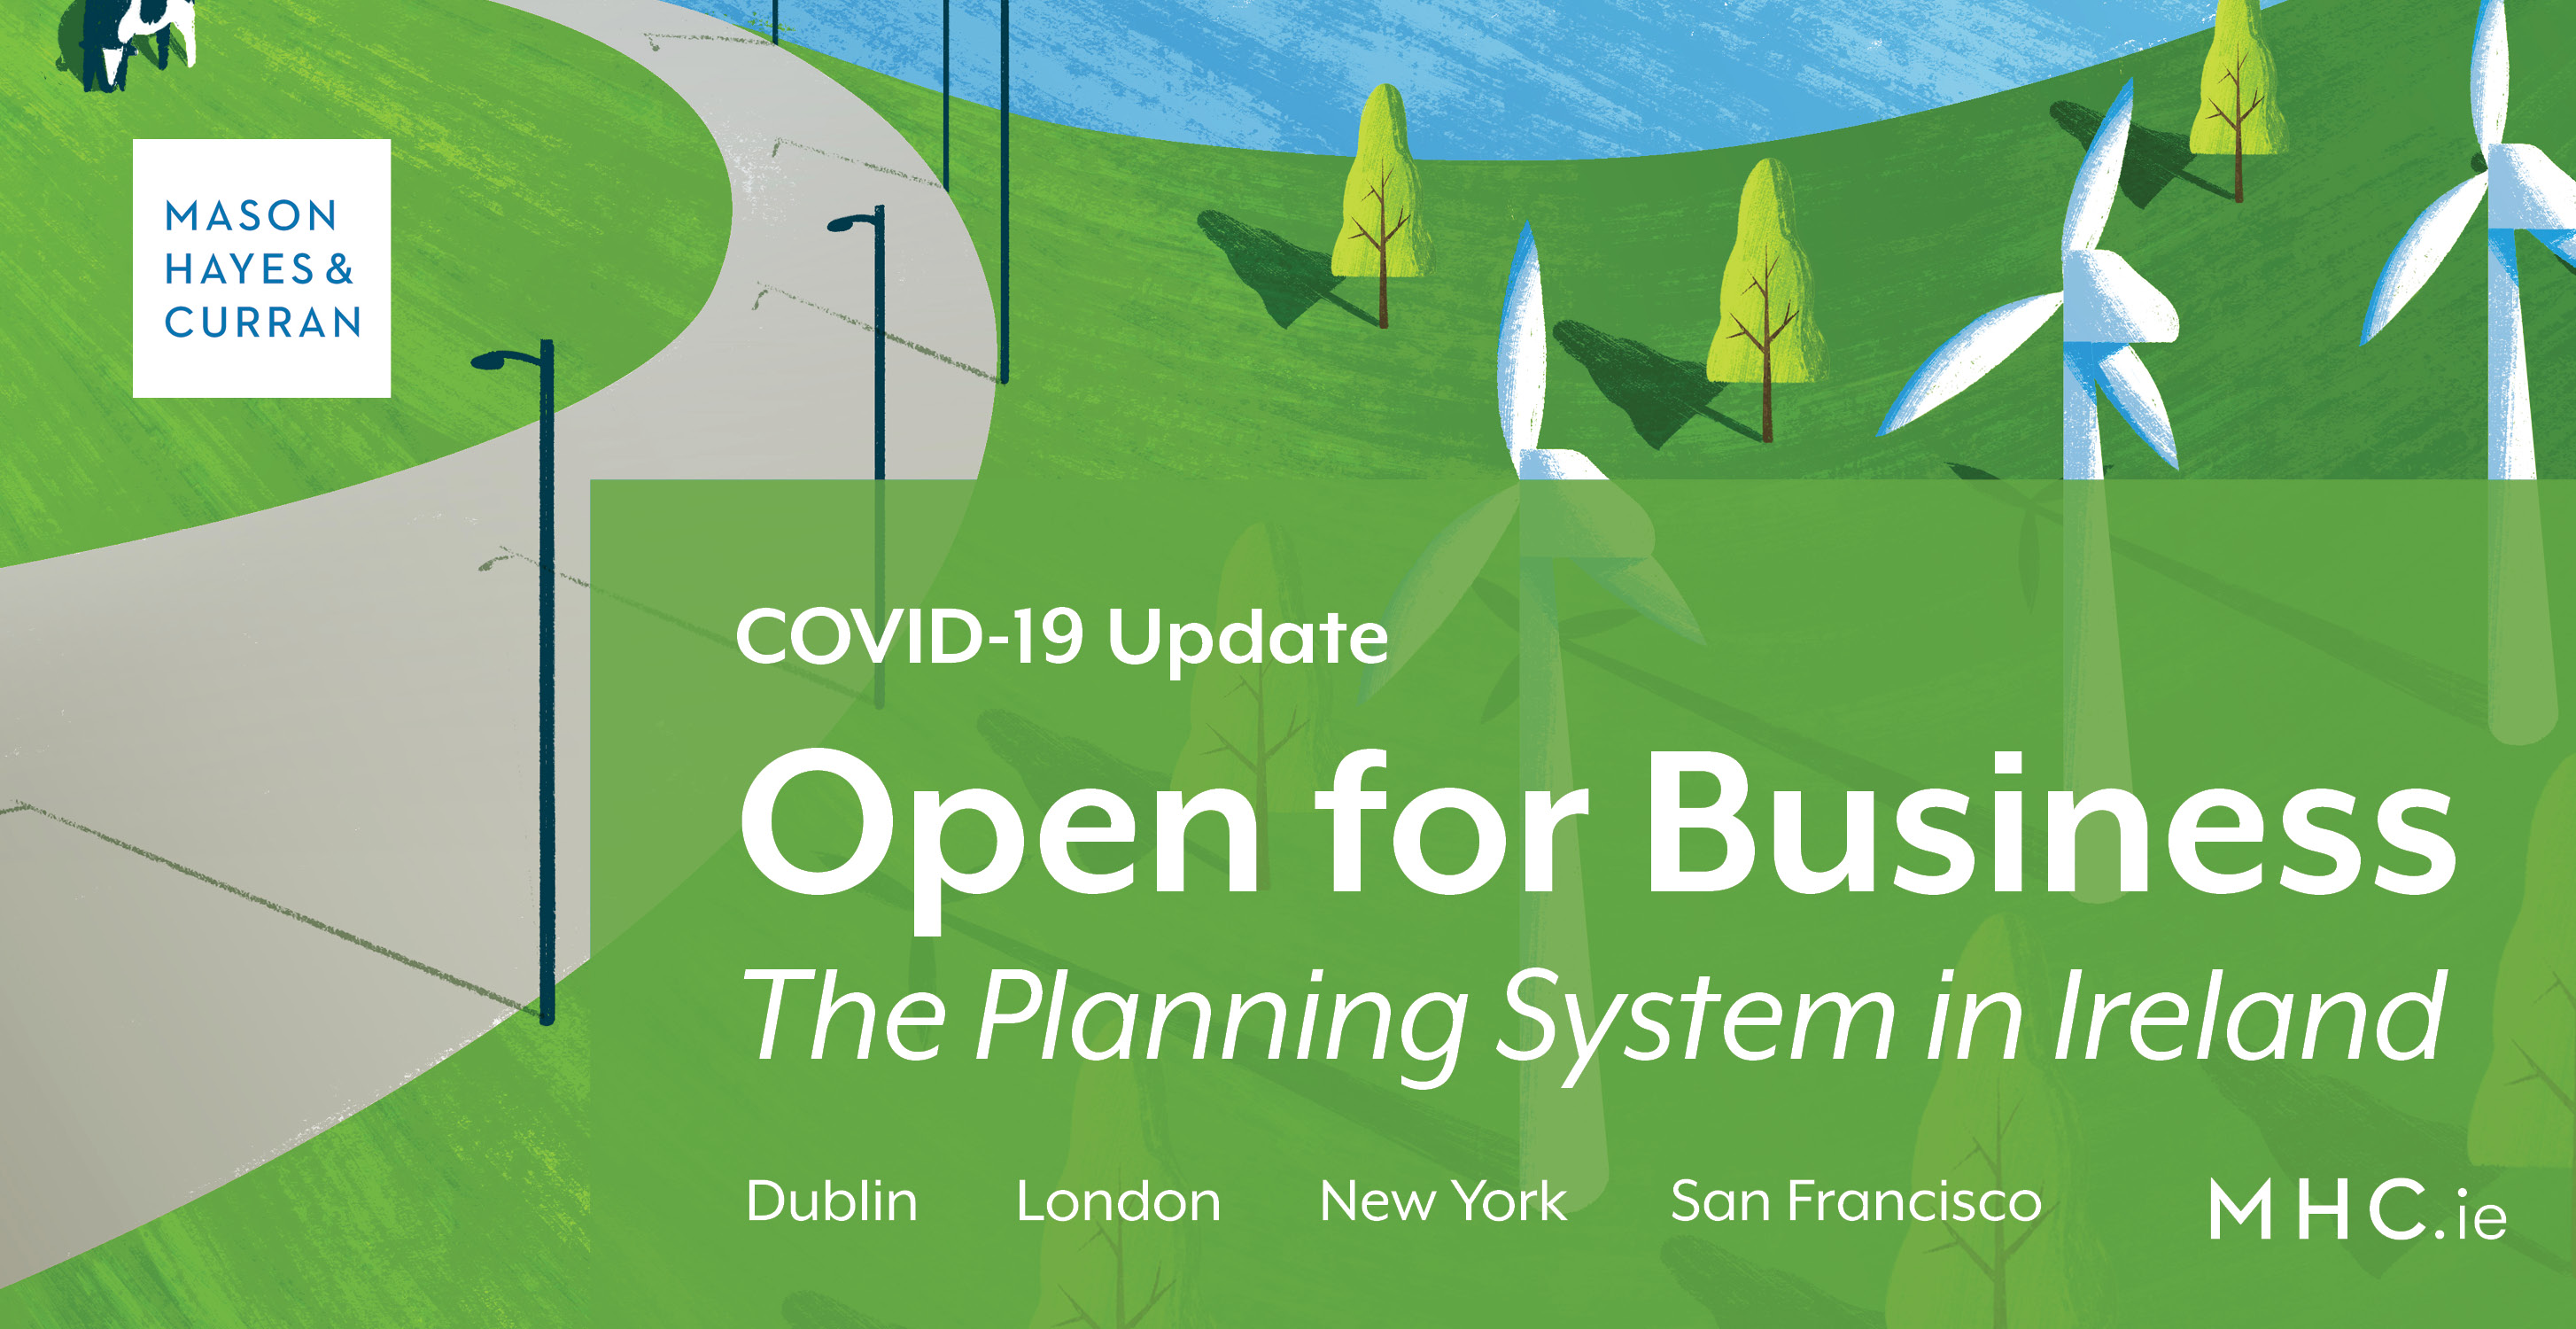 Covid 19 Open For Business The Planning System In Ireland Mason Hayes Curran